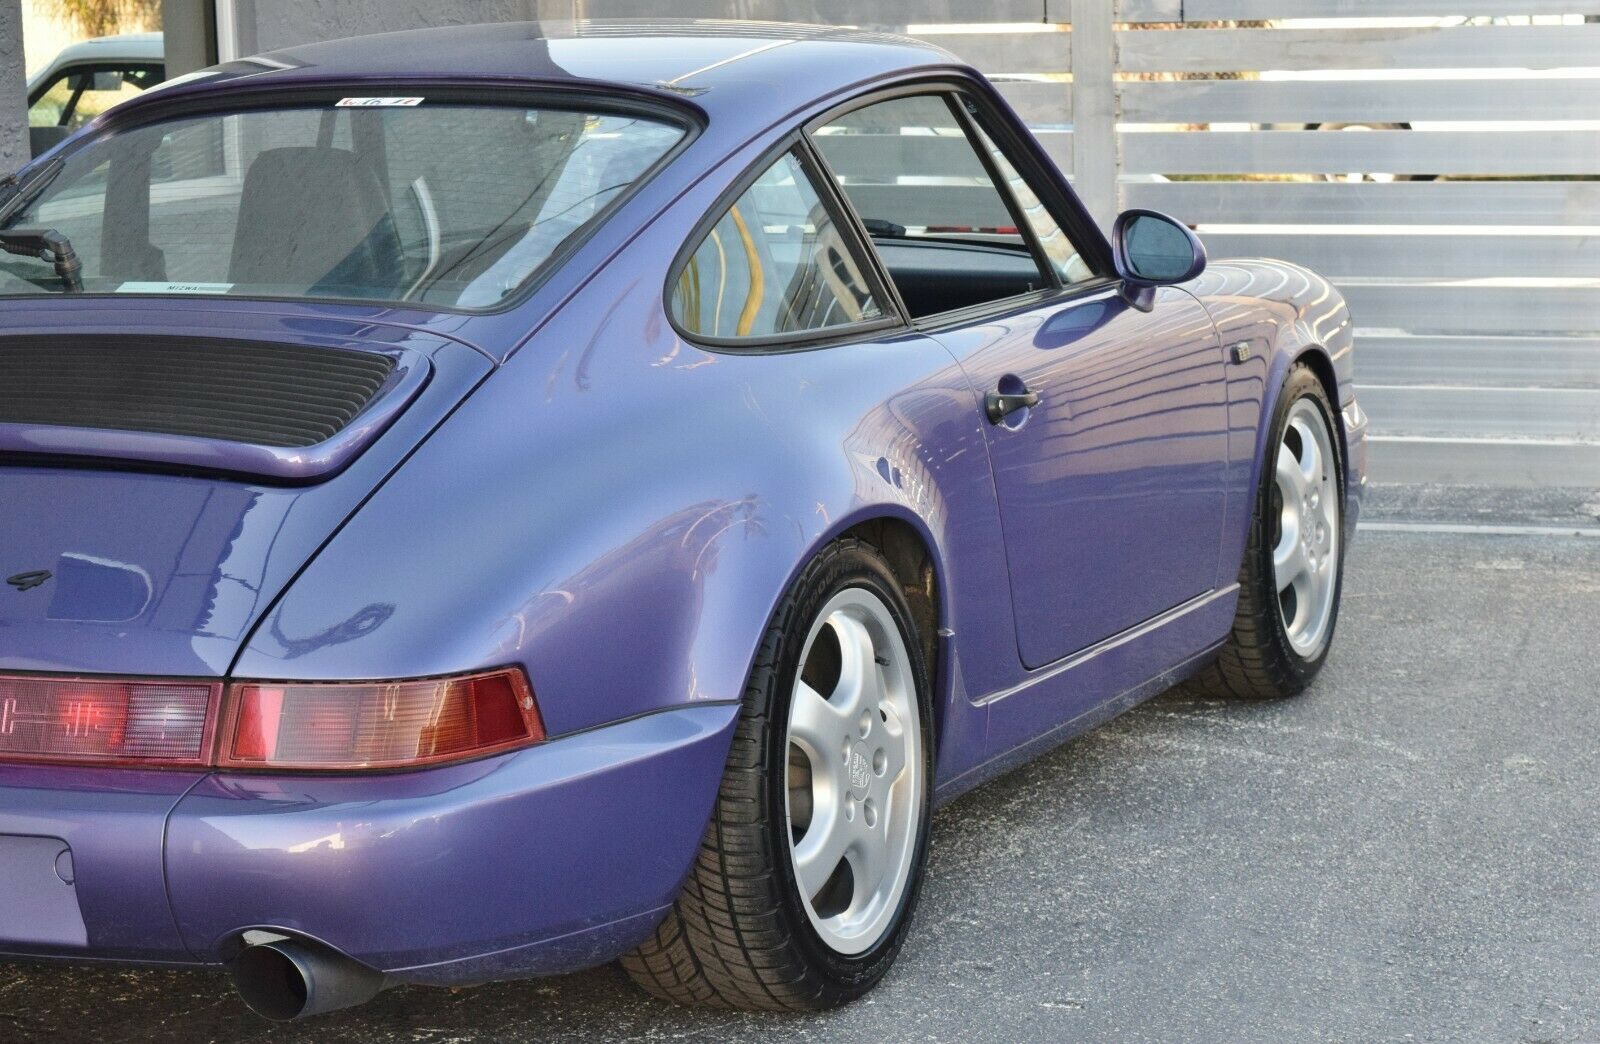 1991 Porsche 911 Carrera 4 964 Coupe Viola Blue Metallic-Euro-SUNROOF DELETE-ONLY 33K MILES-Certificate of authenticity